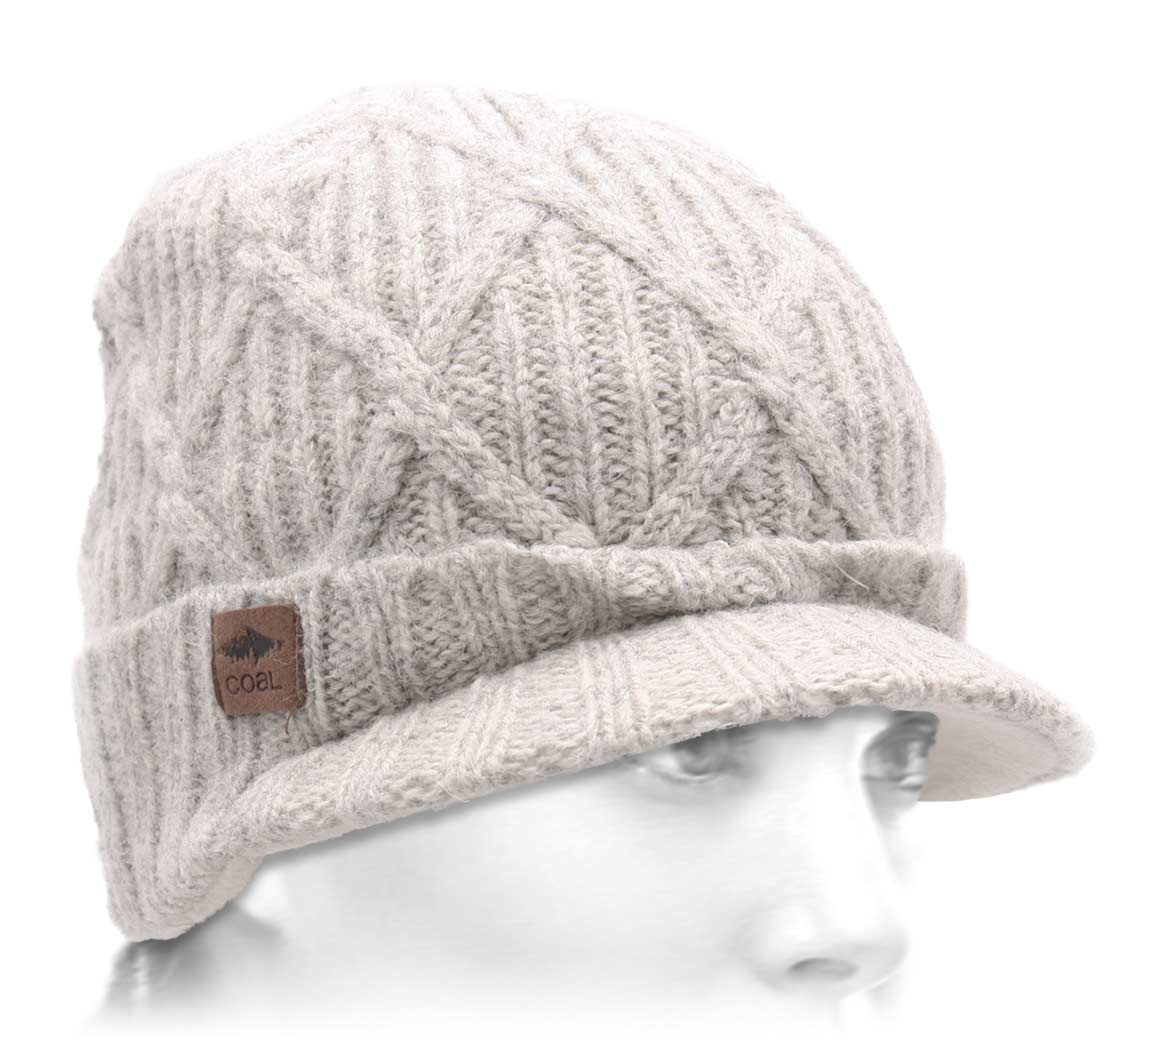 Court / Classique The yukon brim The yukon brim